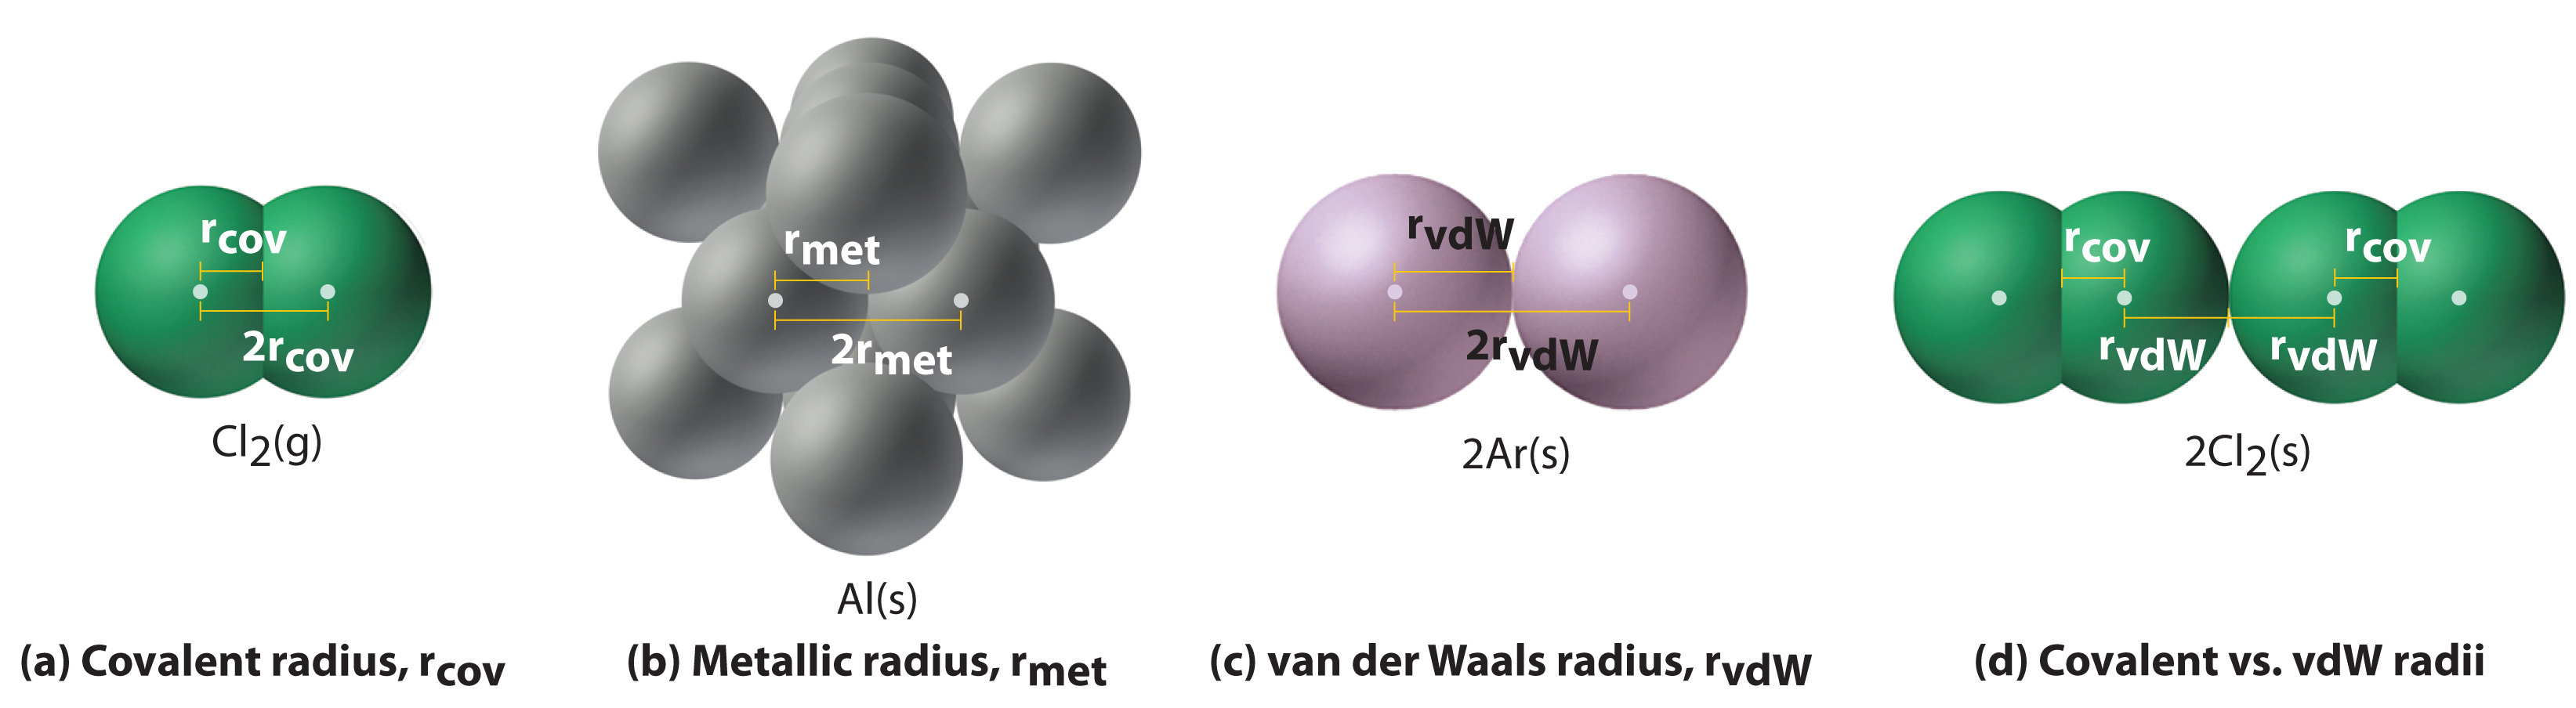 Sizes Of Atoms And Ions 3d Oxygen Atom Diagram Spheres Represent Carbon